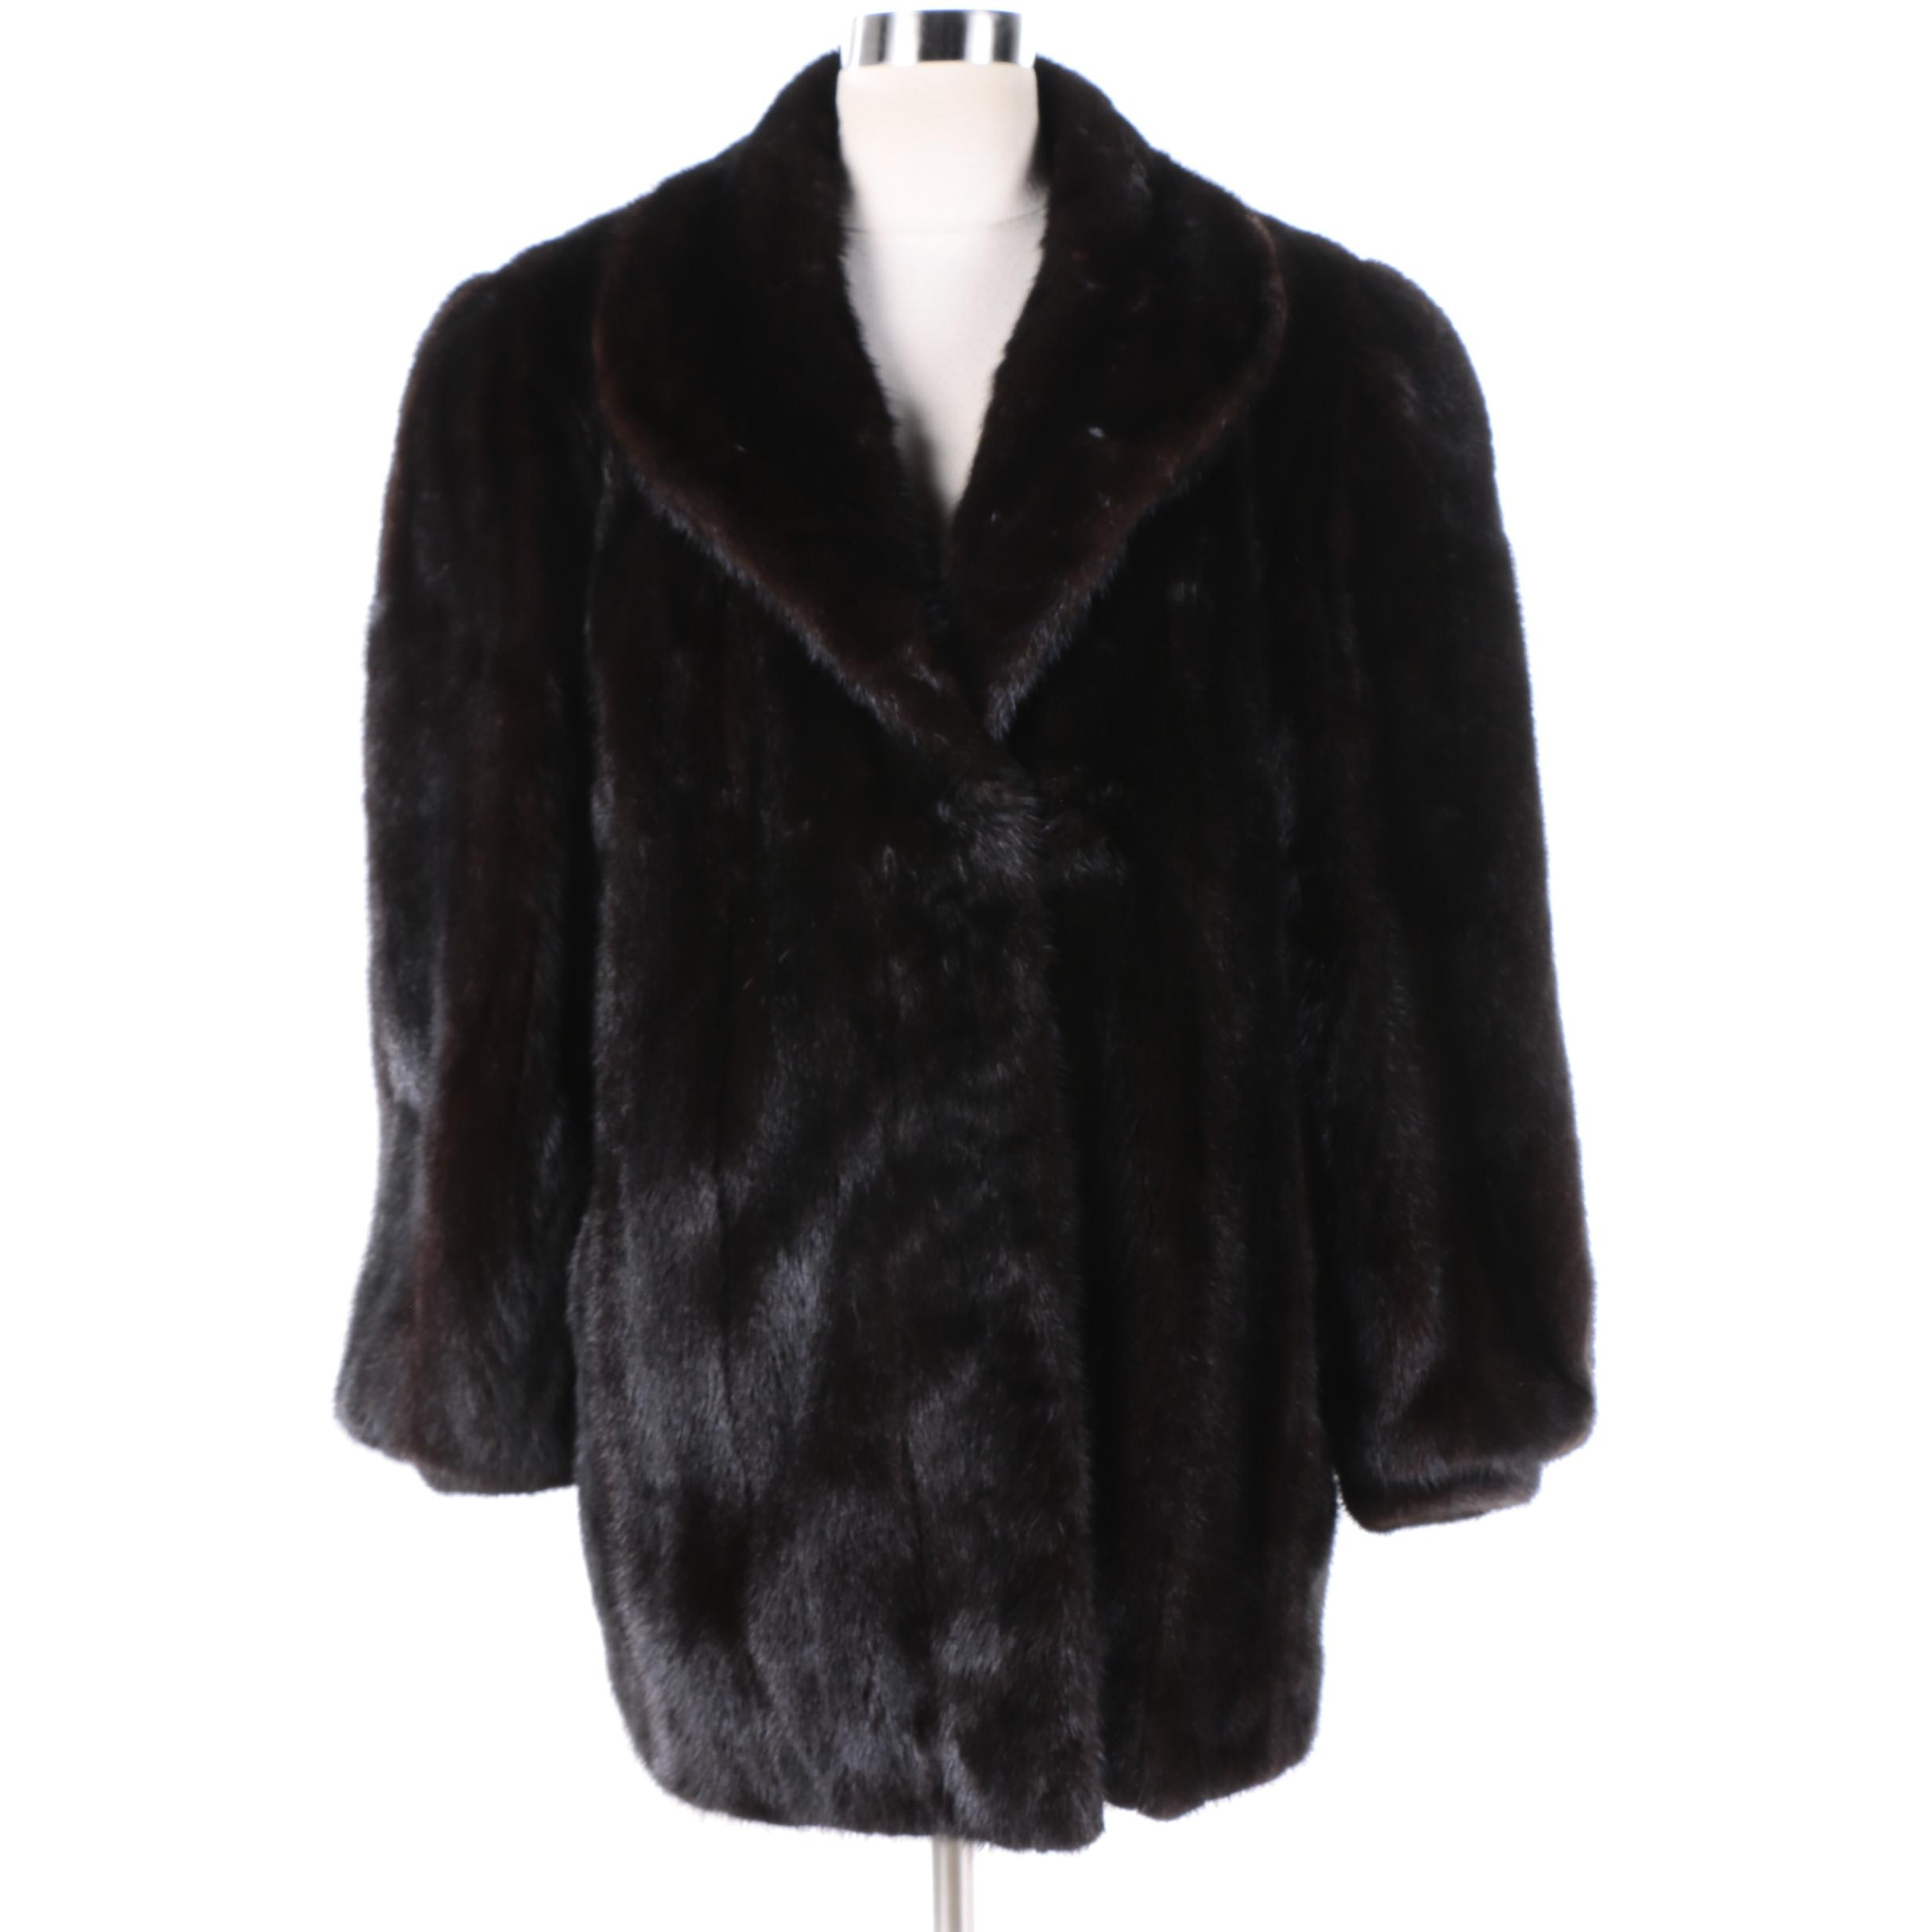 Women's Black Mink Fur Coat